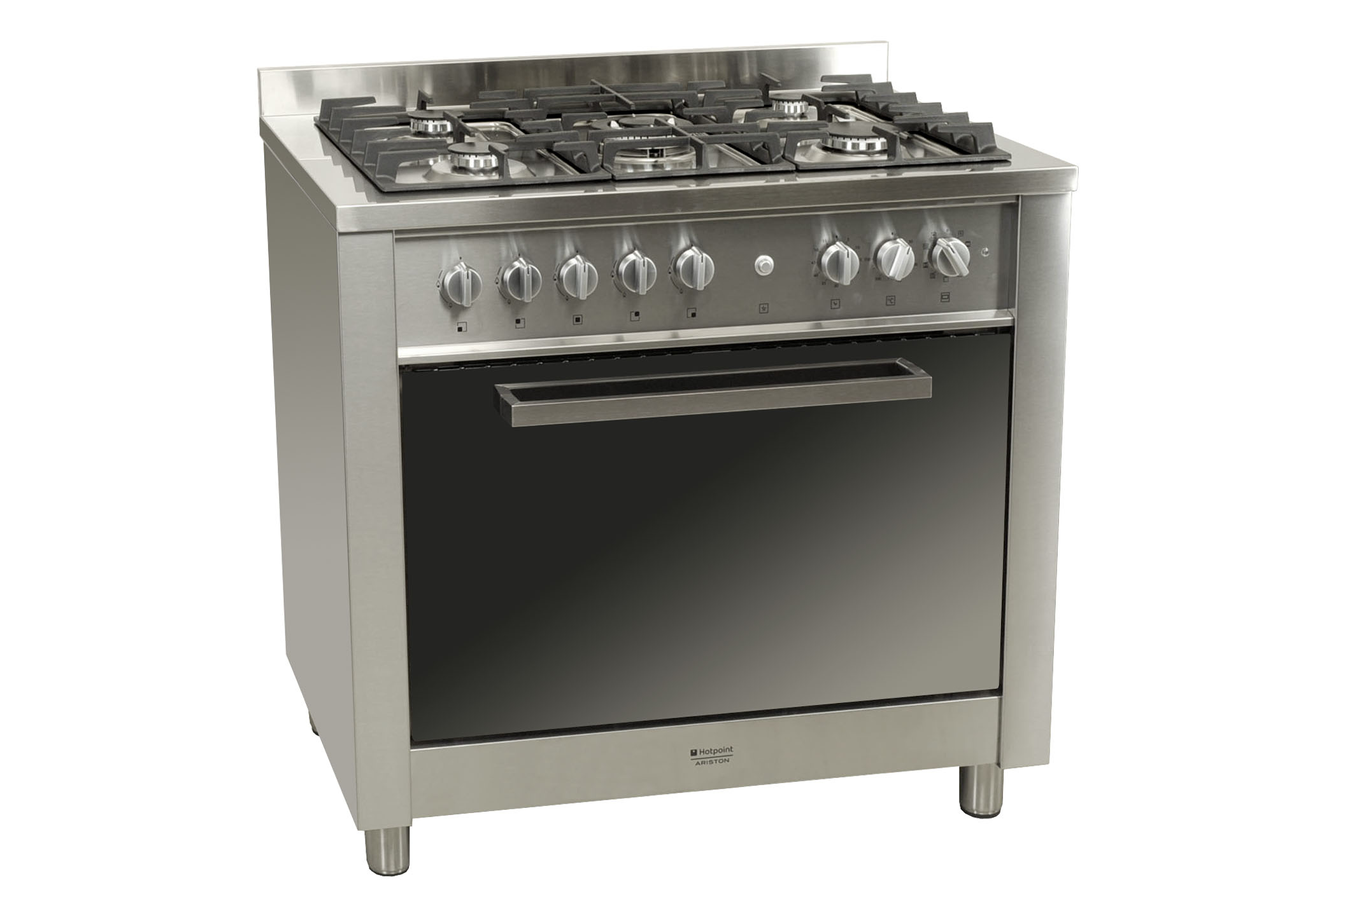 Piano de cuisson hotpoint obs cp98sp1 ix ha inox 2763532 darty - Piano de cuisson inox ...